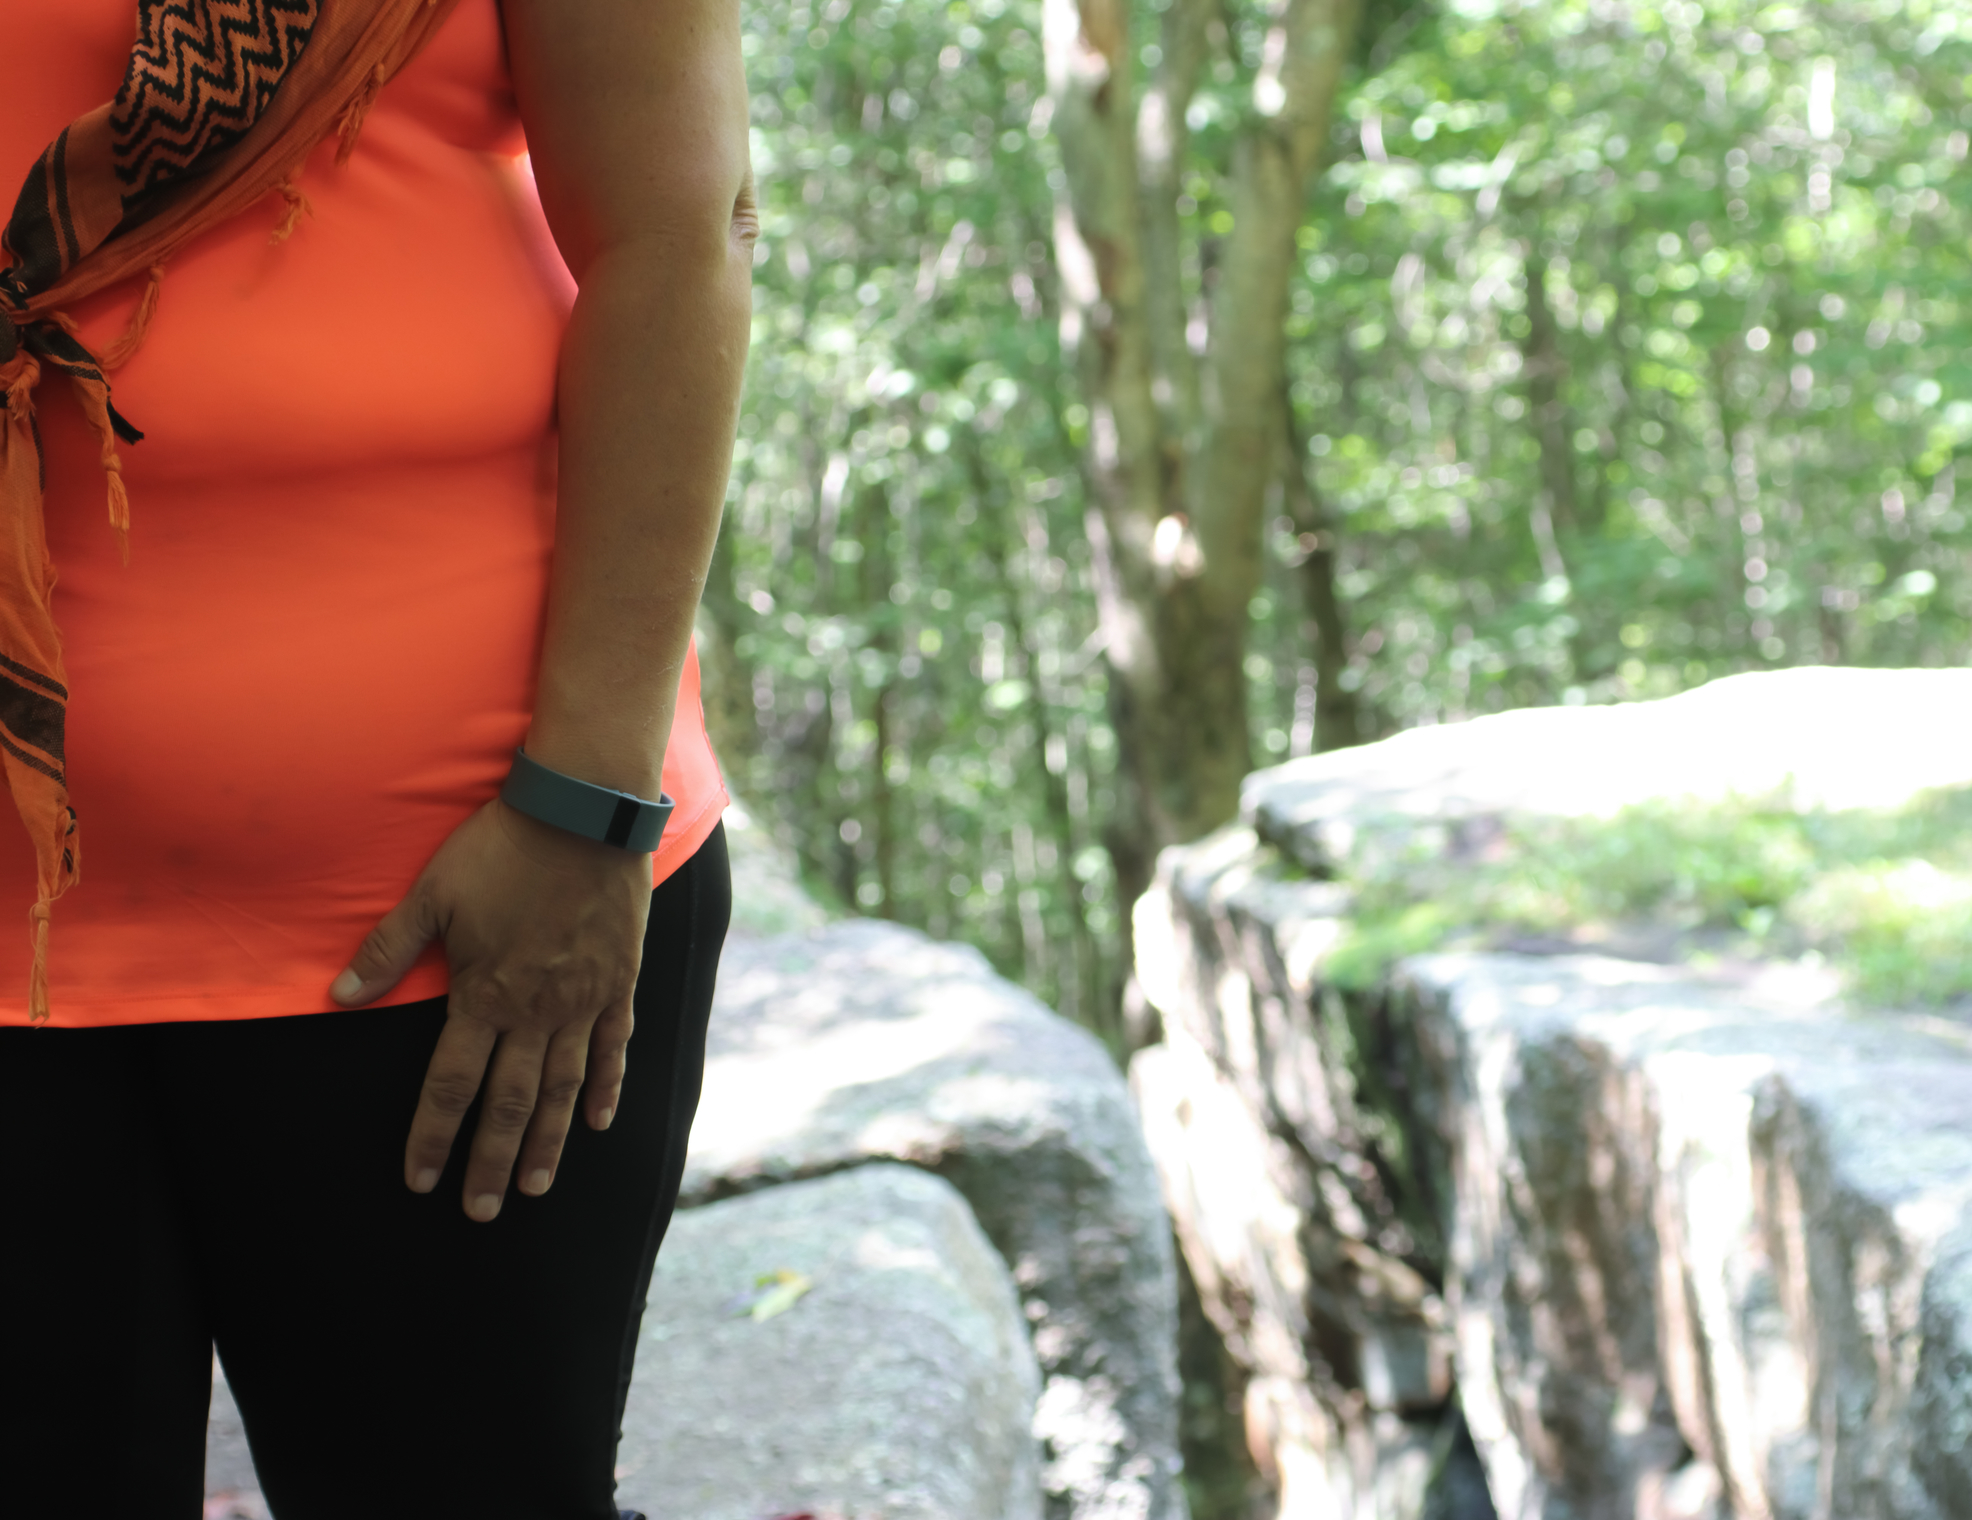 Woman Walking With A Fitbit